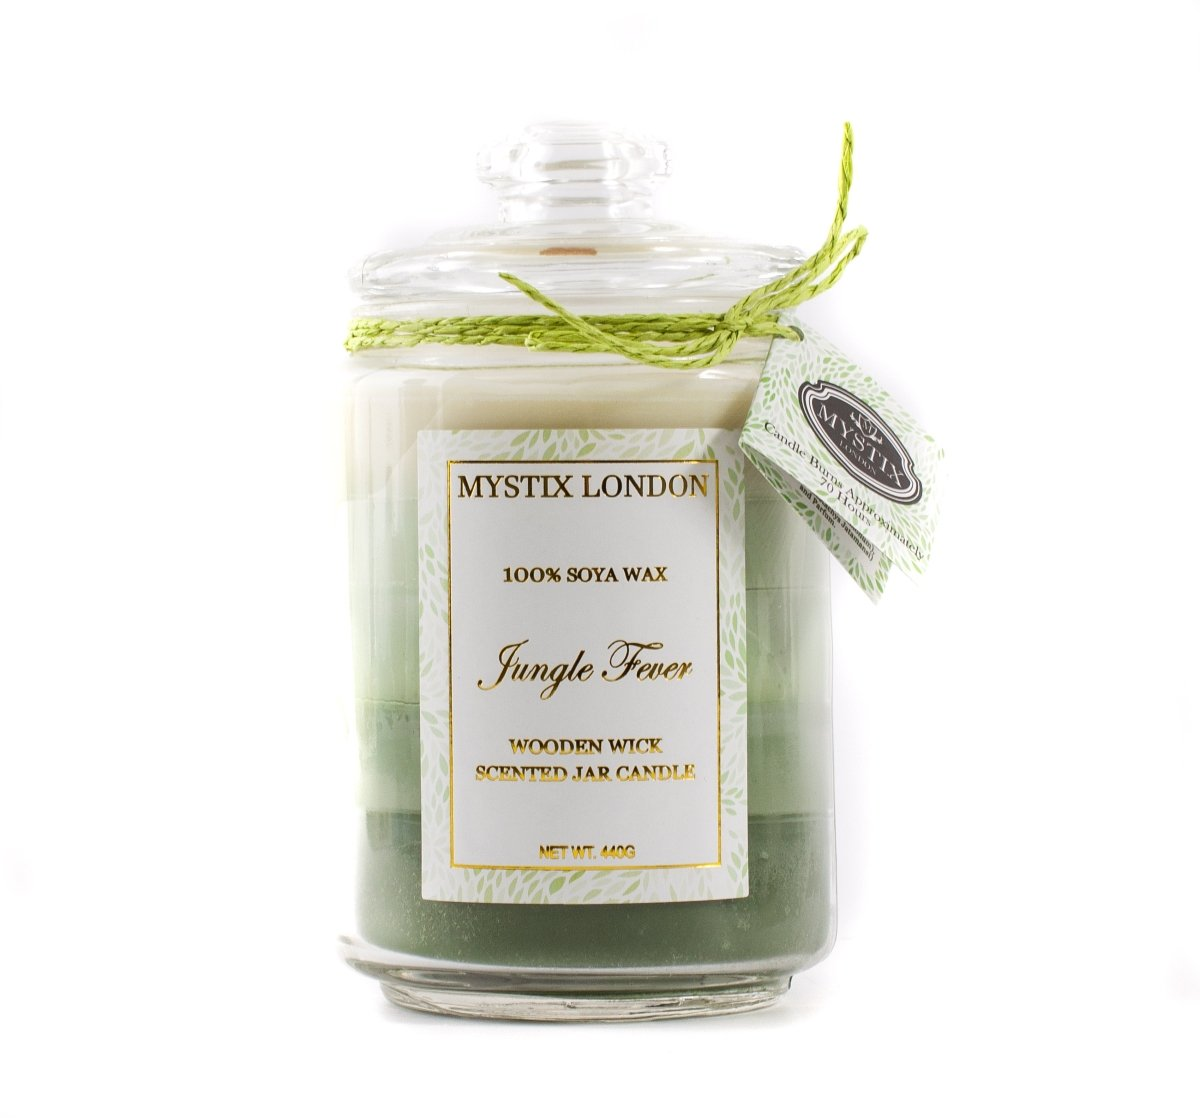 Mystix London Jungle Fever Wooden Wick Scented Jar Candle - Mystic Moments UK